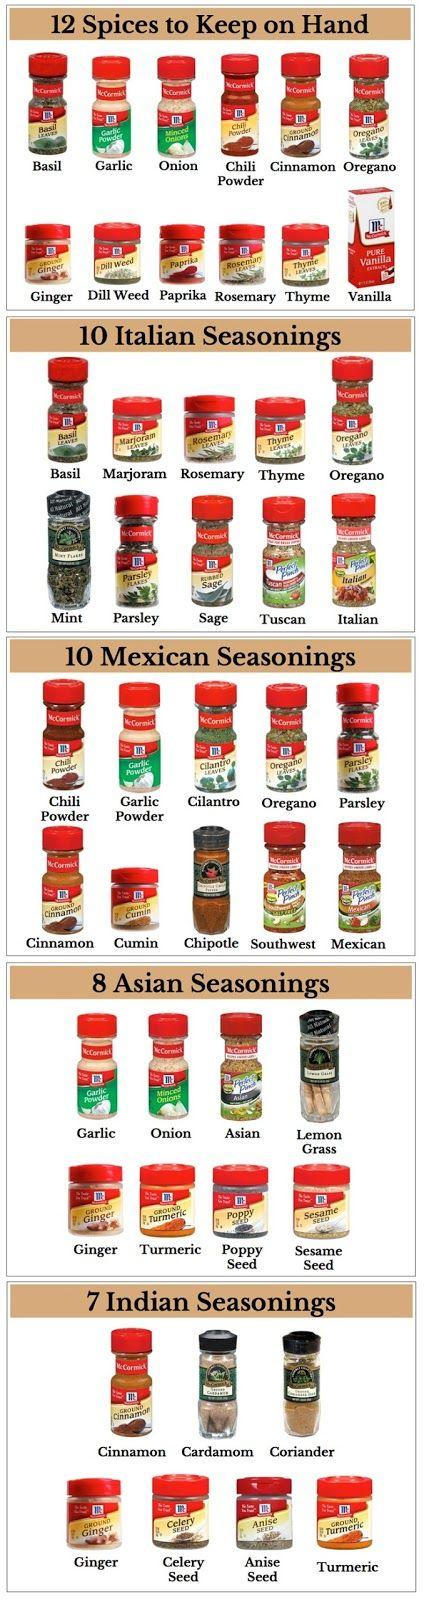 Great suggestion of spices to keep on hand & what spices to put together to create certain ethnic flavors.